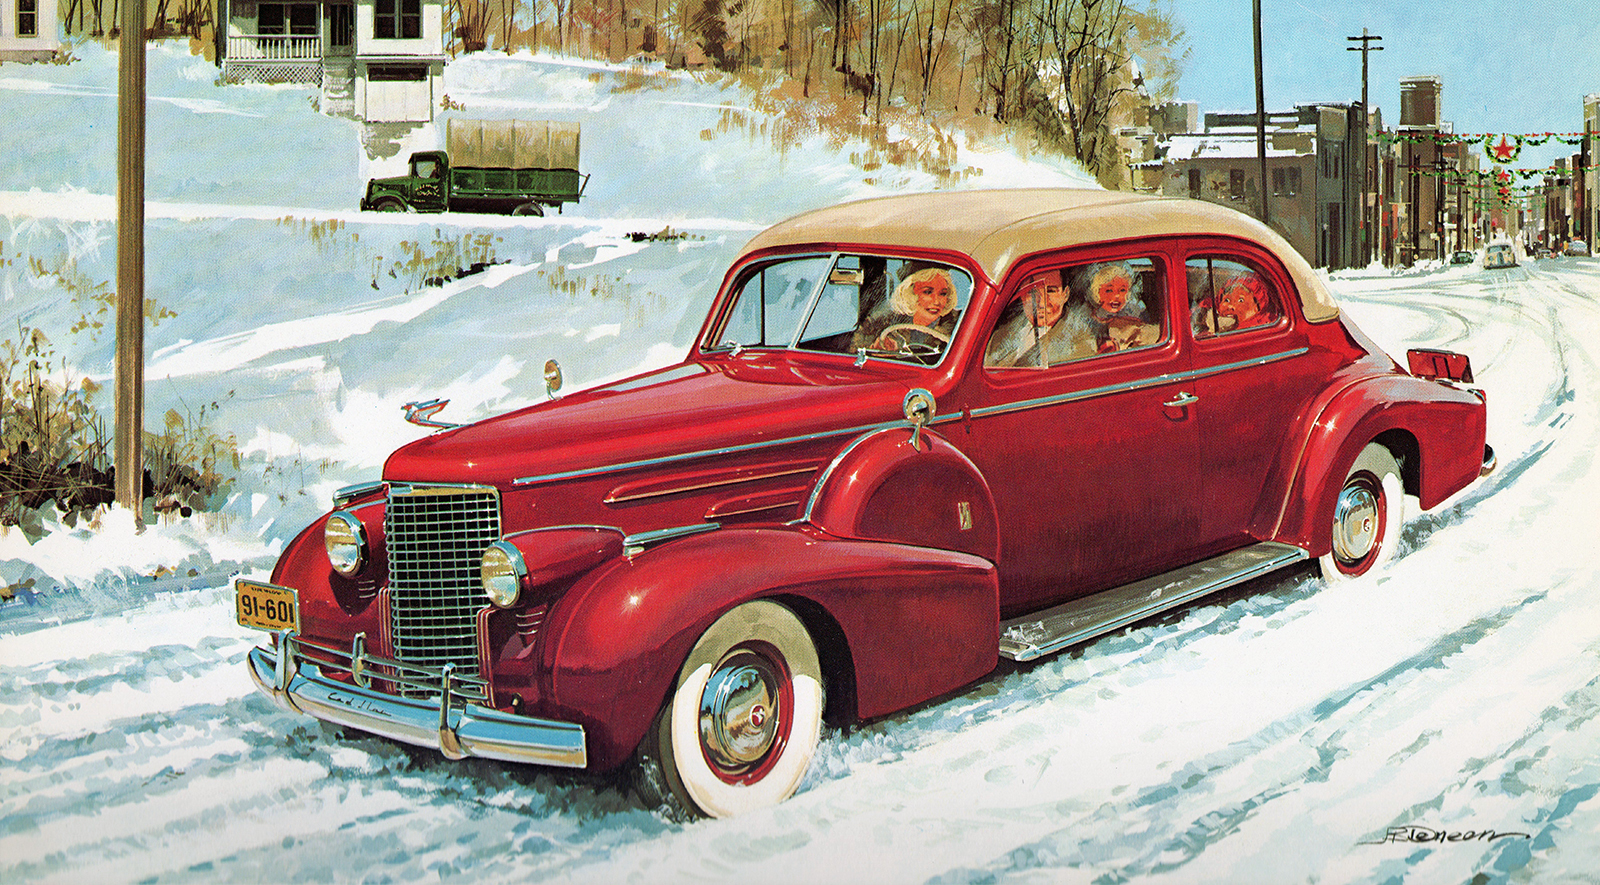 1940. Cadillac V-16 Derham body fastback coupe. Illustrated by James B. Deneen